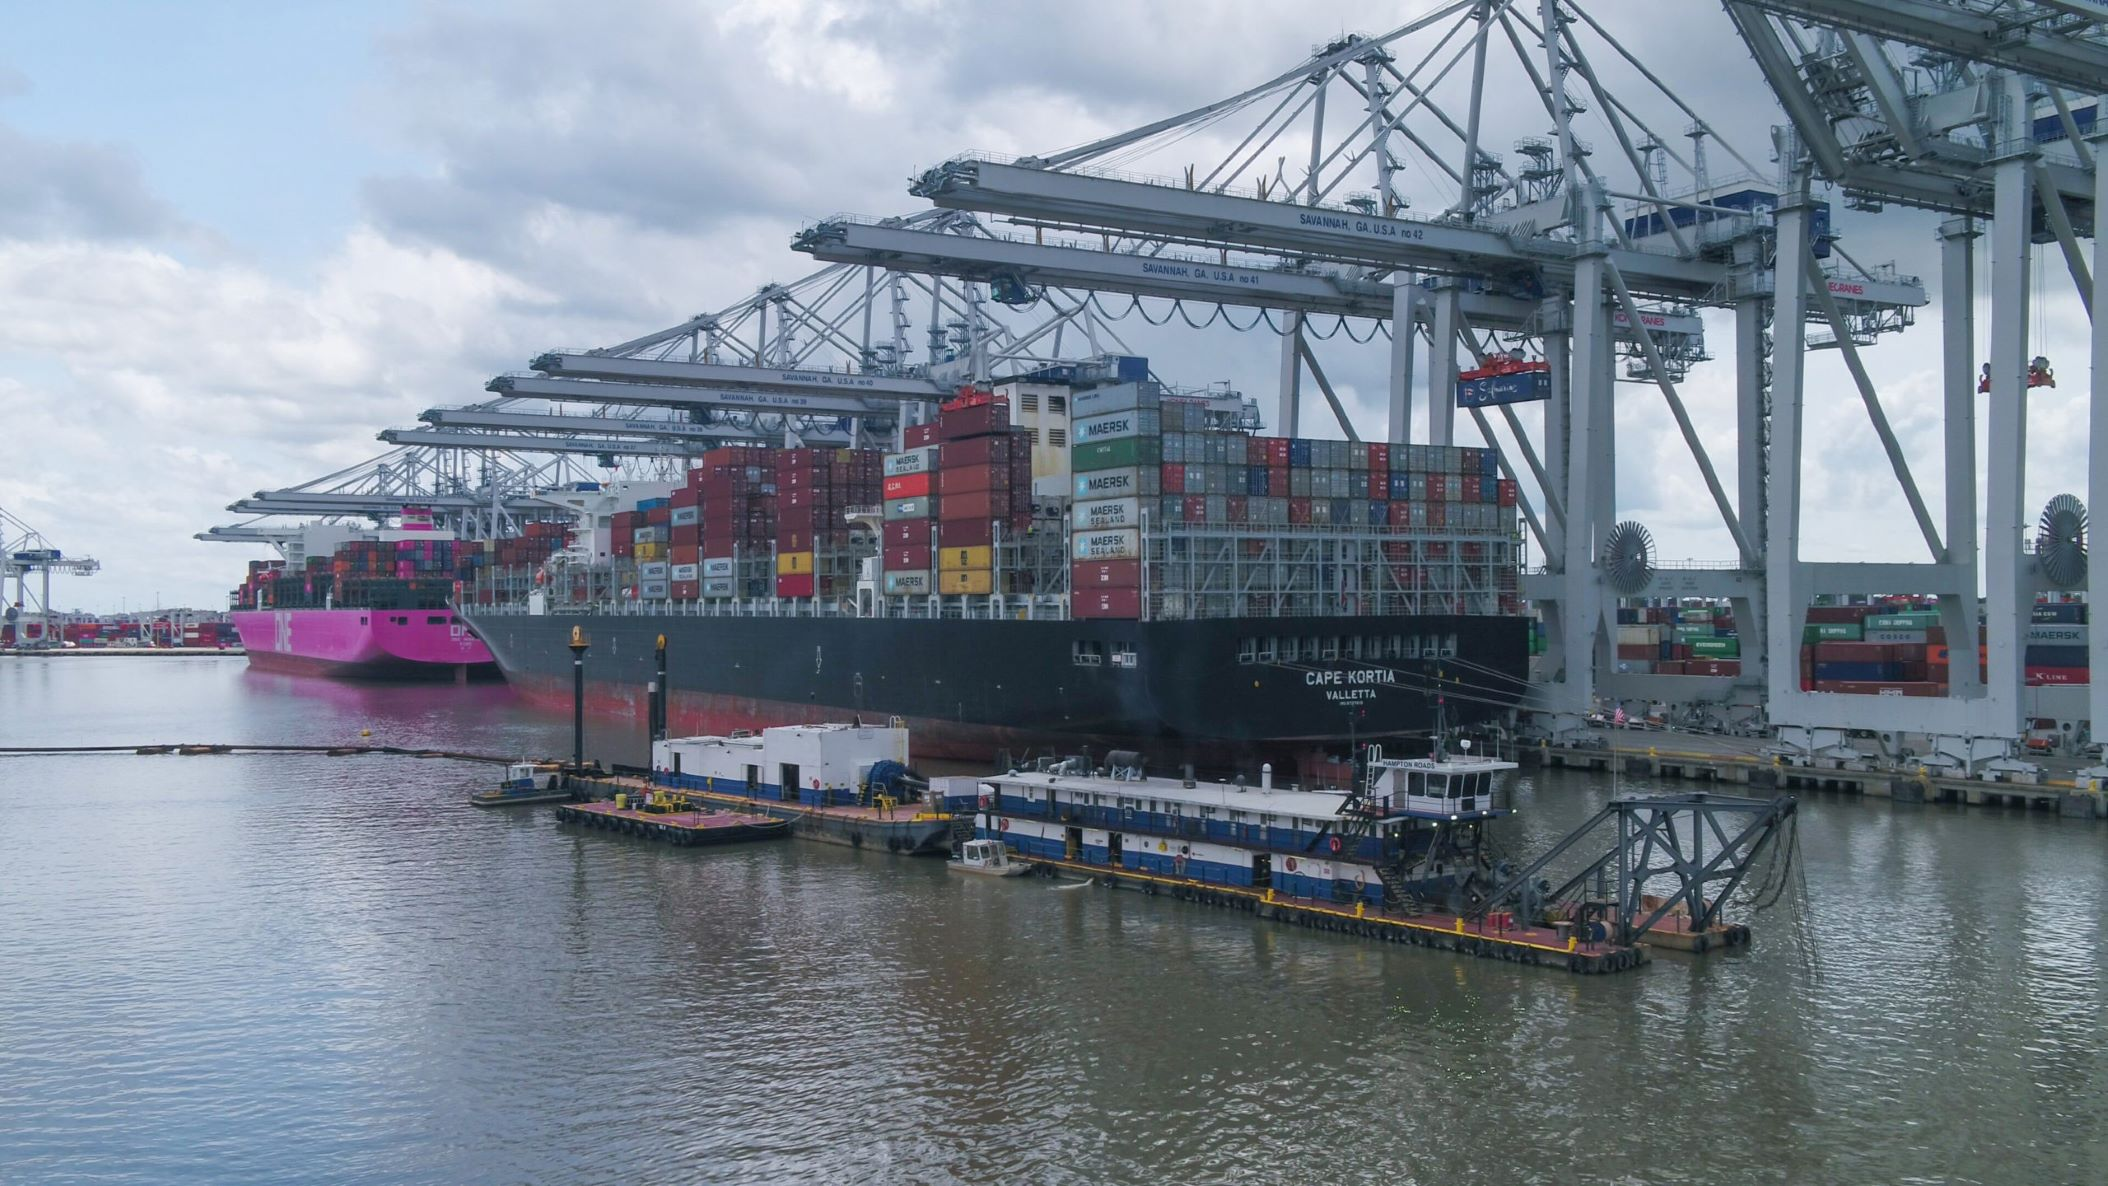 Dredging vessels alongside a massive container vessel docked at a port with large cranes overhead.